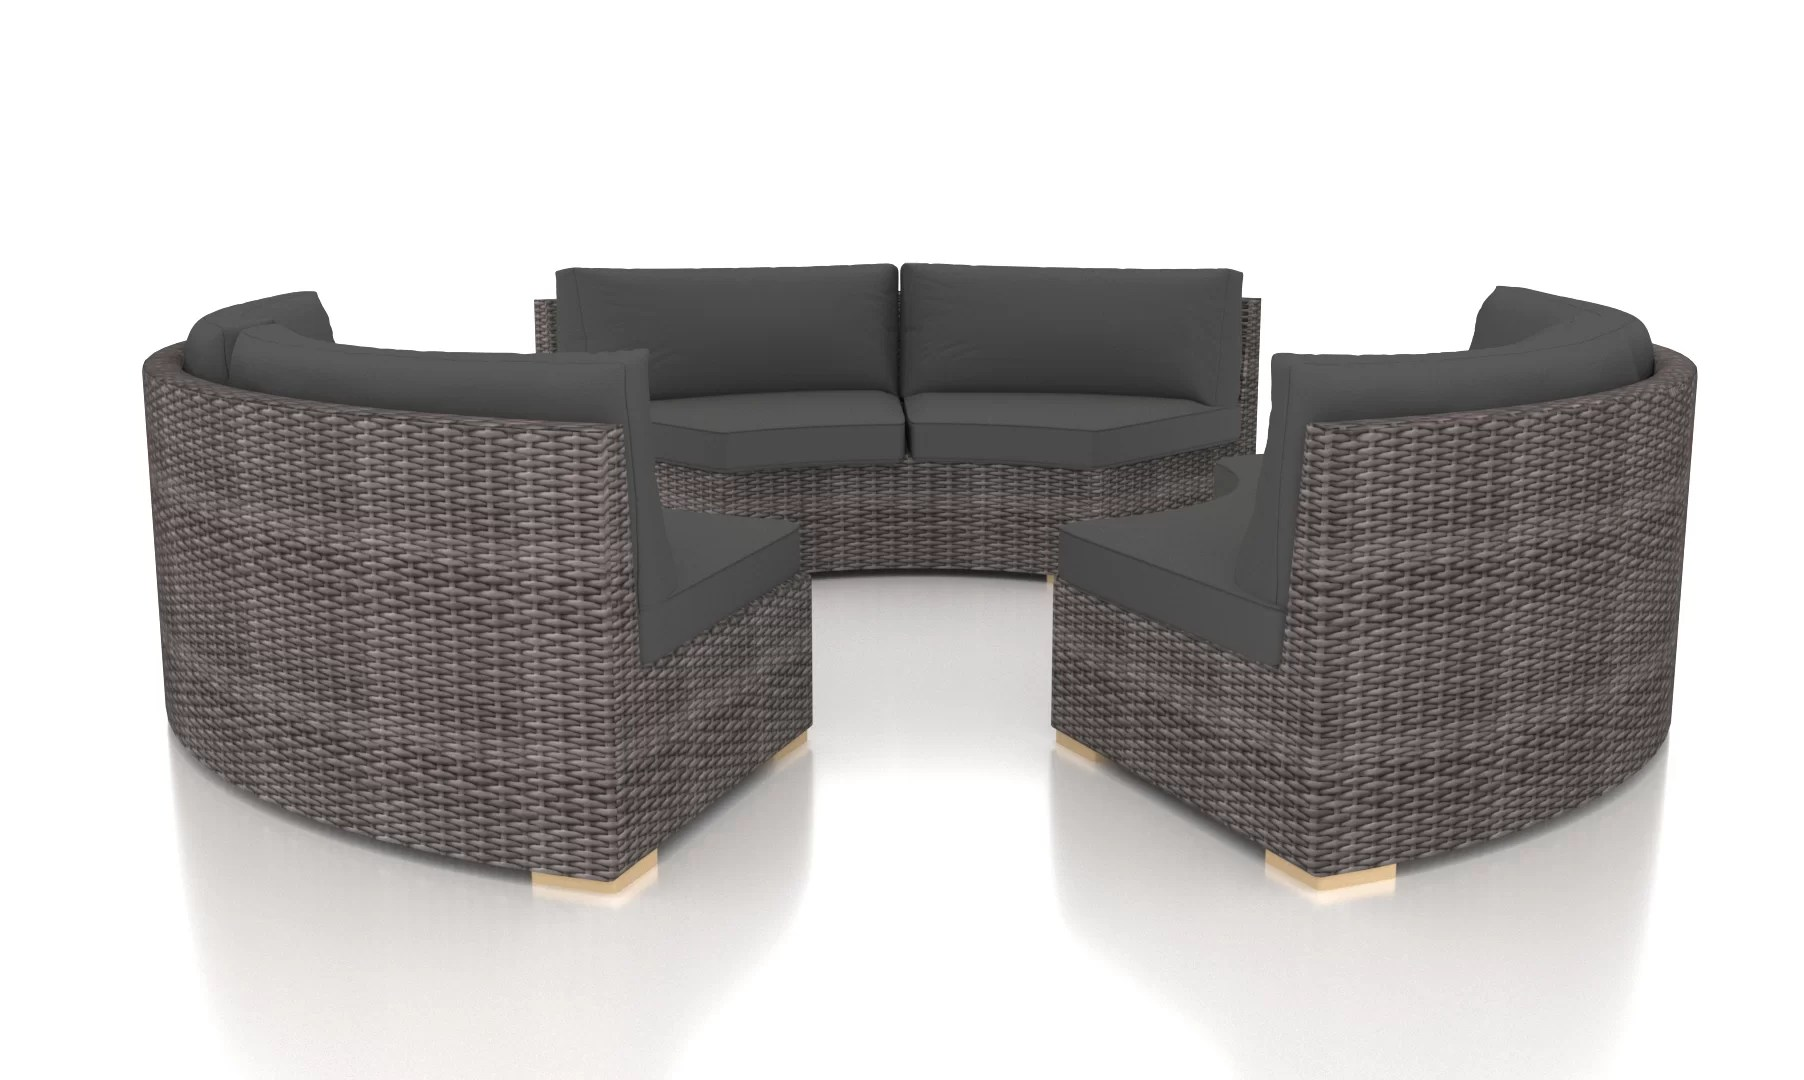 Rattan 3 Piece Sofa Holcomb 3 Piece Rattan Sofa Seating Group With Sunbrella Cushions